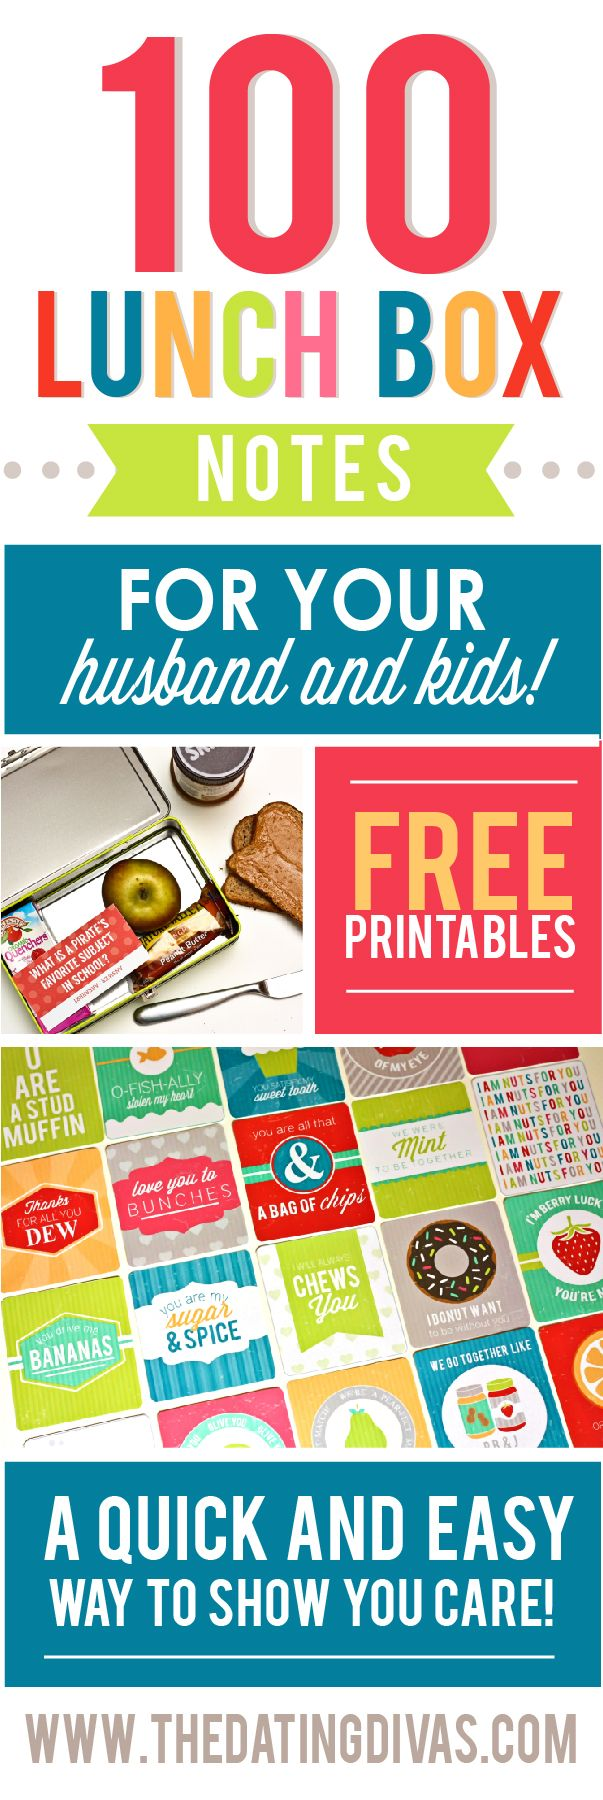 These are ADORABLE! And my hubby and kids will LOVE getting them in their lunch! www.TheDatingDivas.com